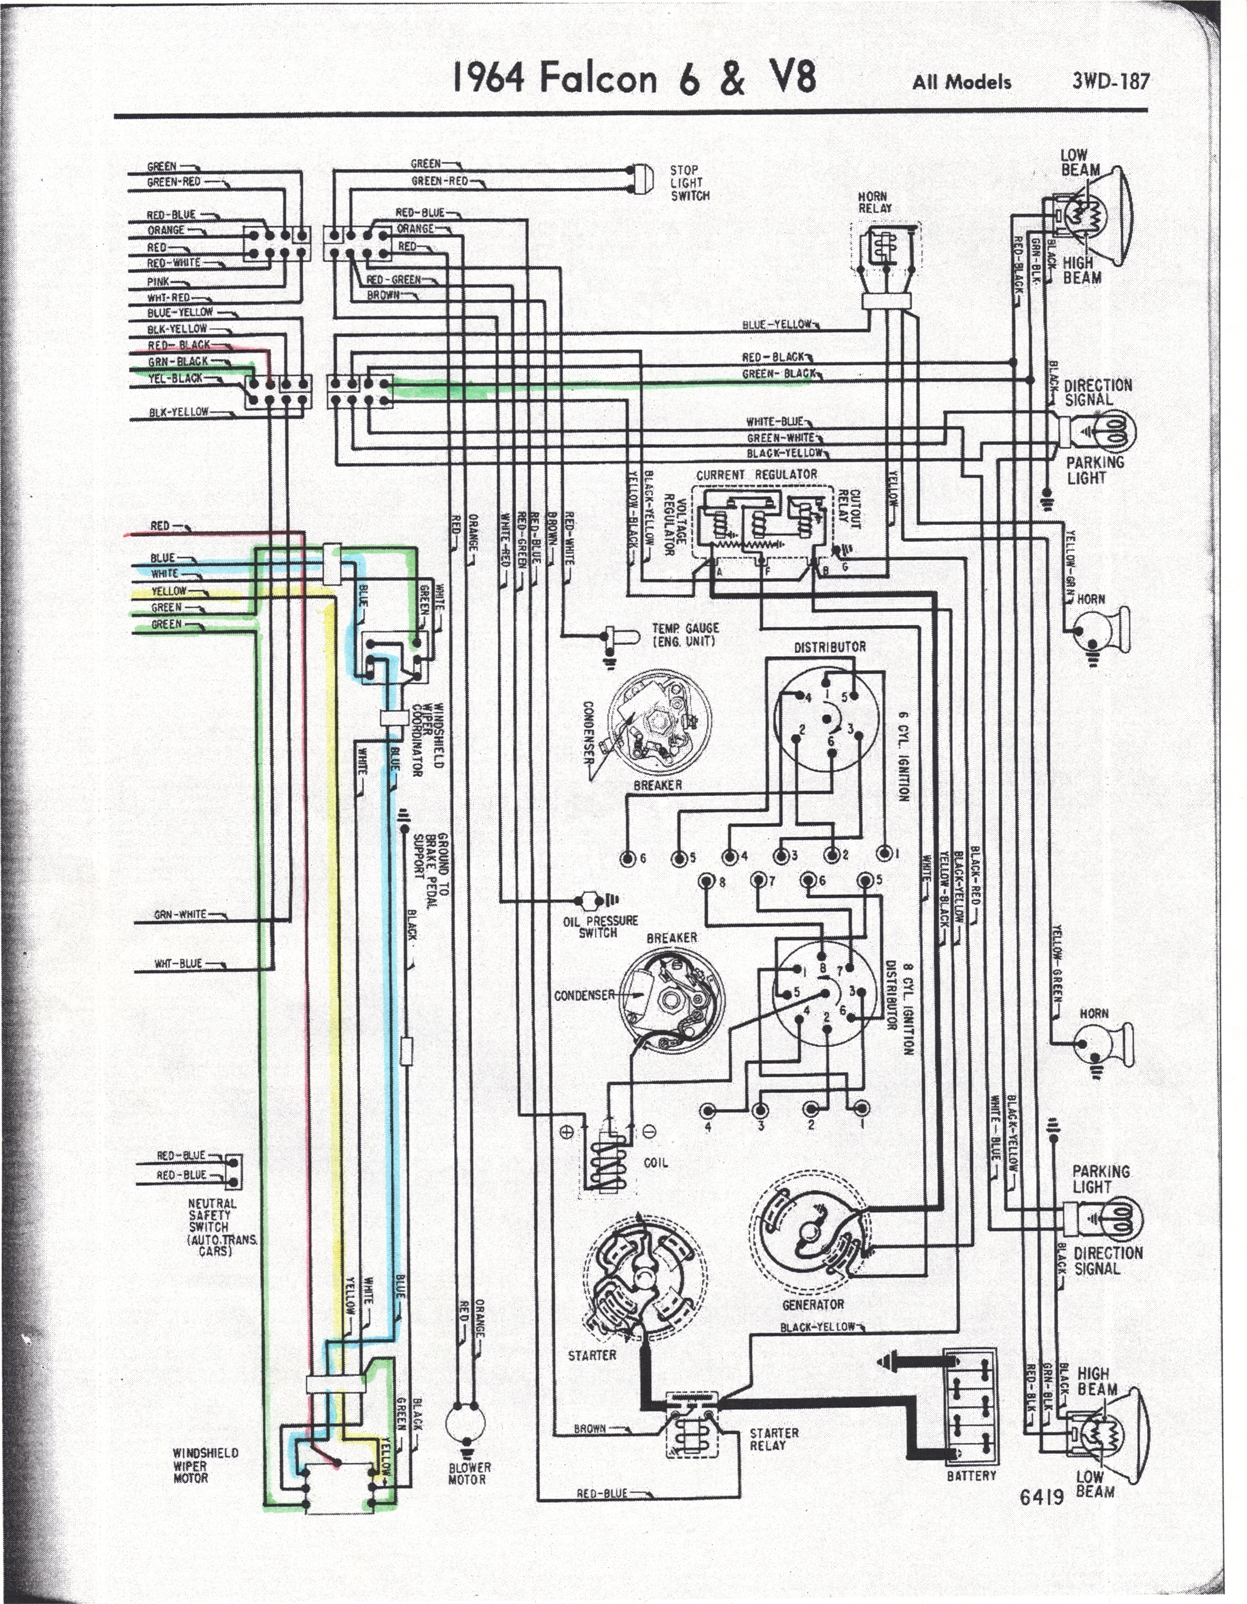 Wiring Diagrams Furthermore Wiper Motor Diagram Together With Falcon 1964 64 Drawing A B Windshield Wipers